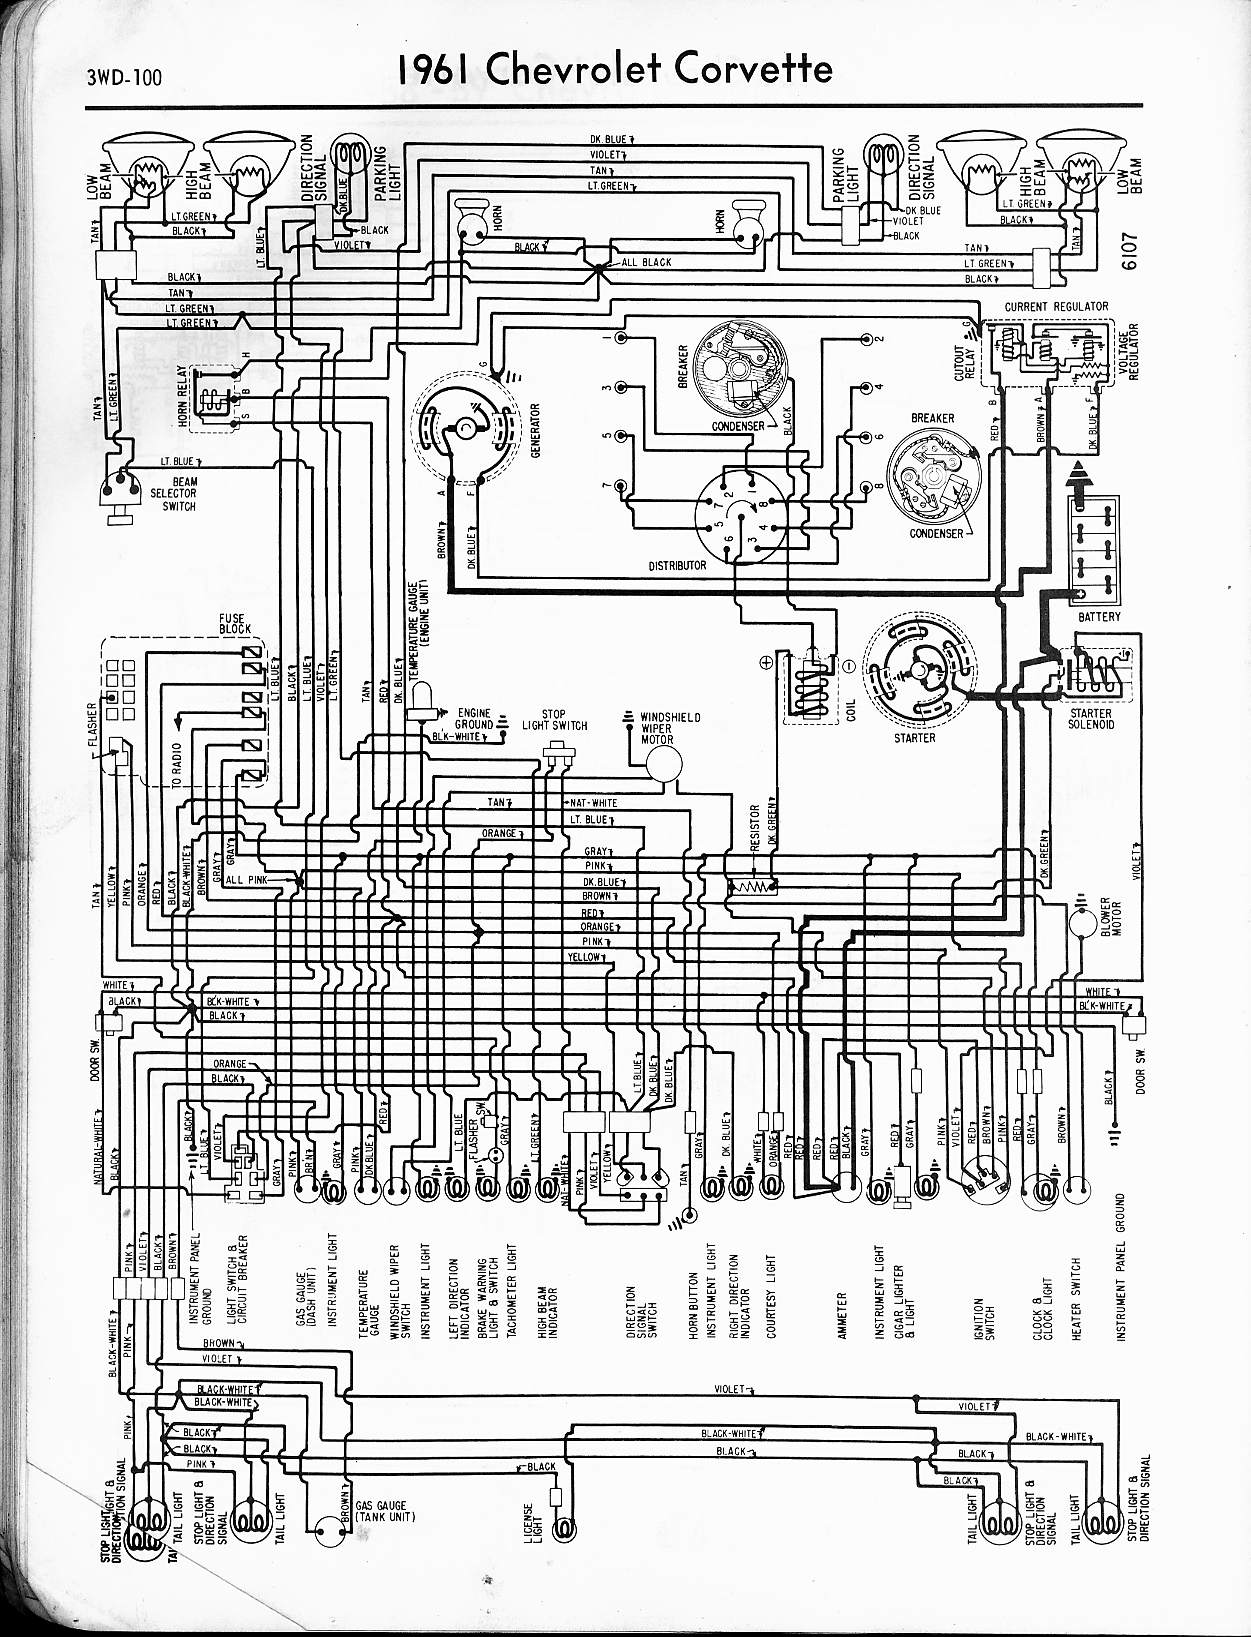 1957 corvette wiring diagram example electrical wiring diagram u2022 rh olkha co